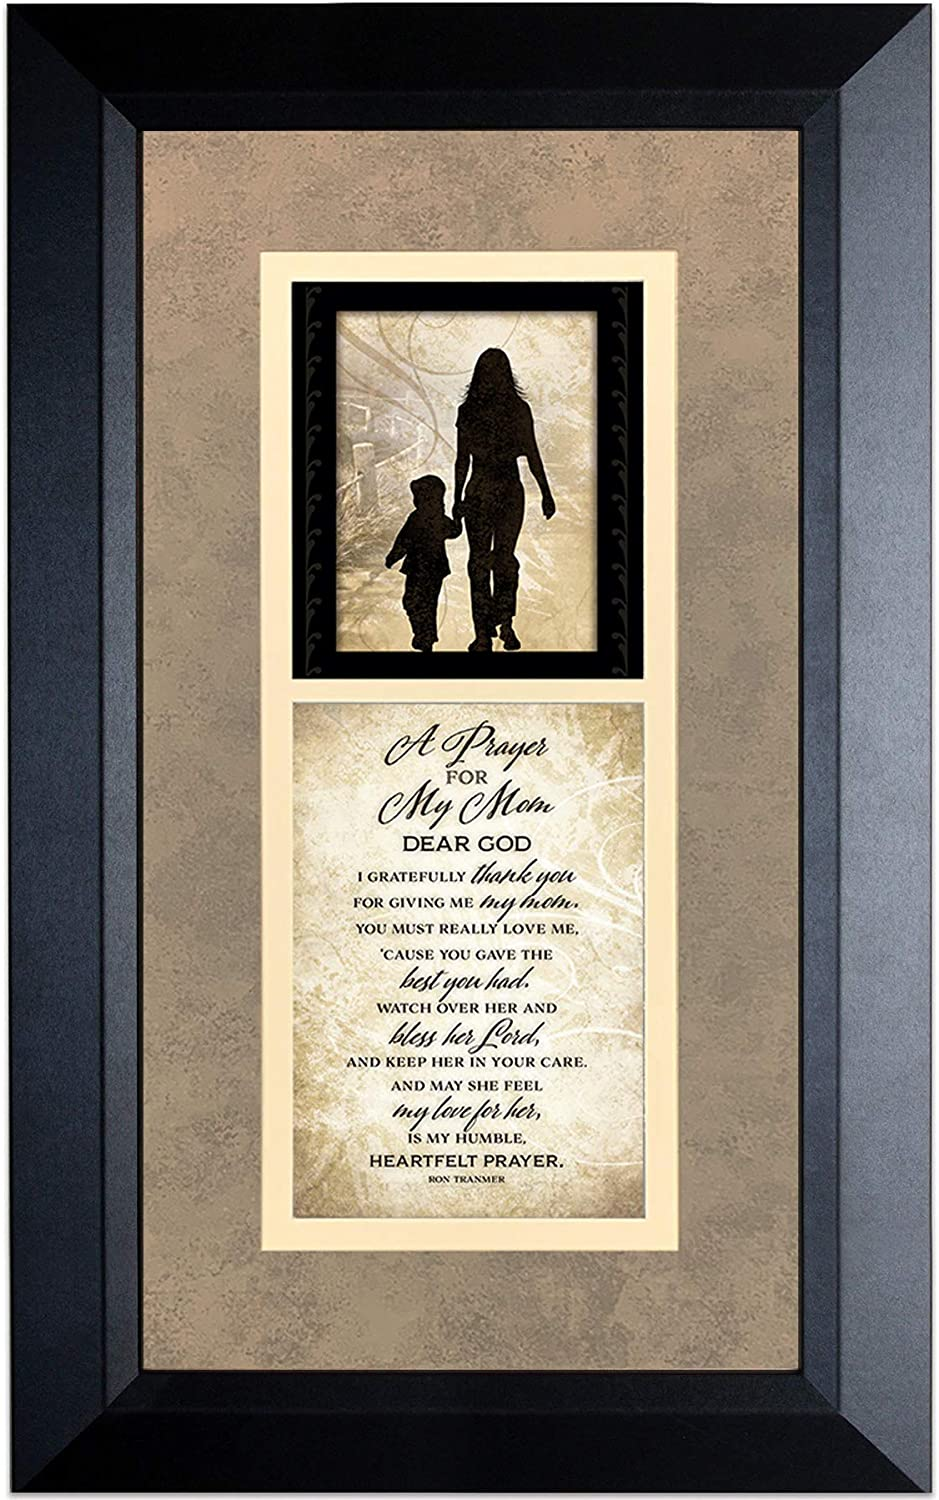 A Prayer for My Mom Wood Wall Art Frame Plaque | 11 inches x 18 inches | Hanger for Hanging | Dear God I Gratefully Thank You for Giving me My Mom James Lawrence